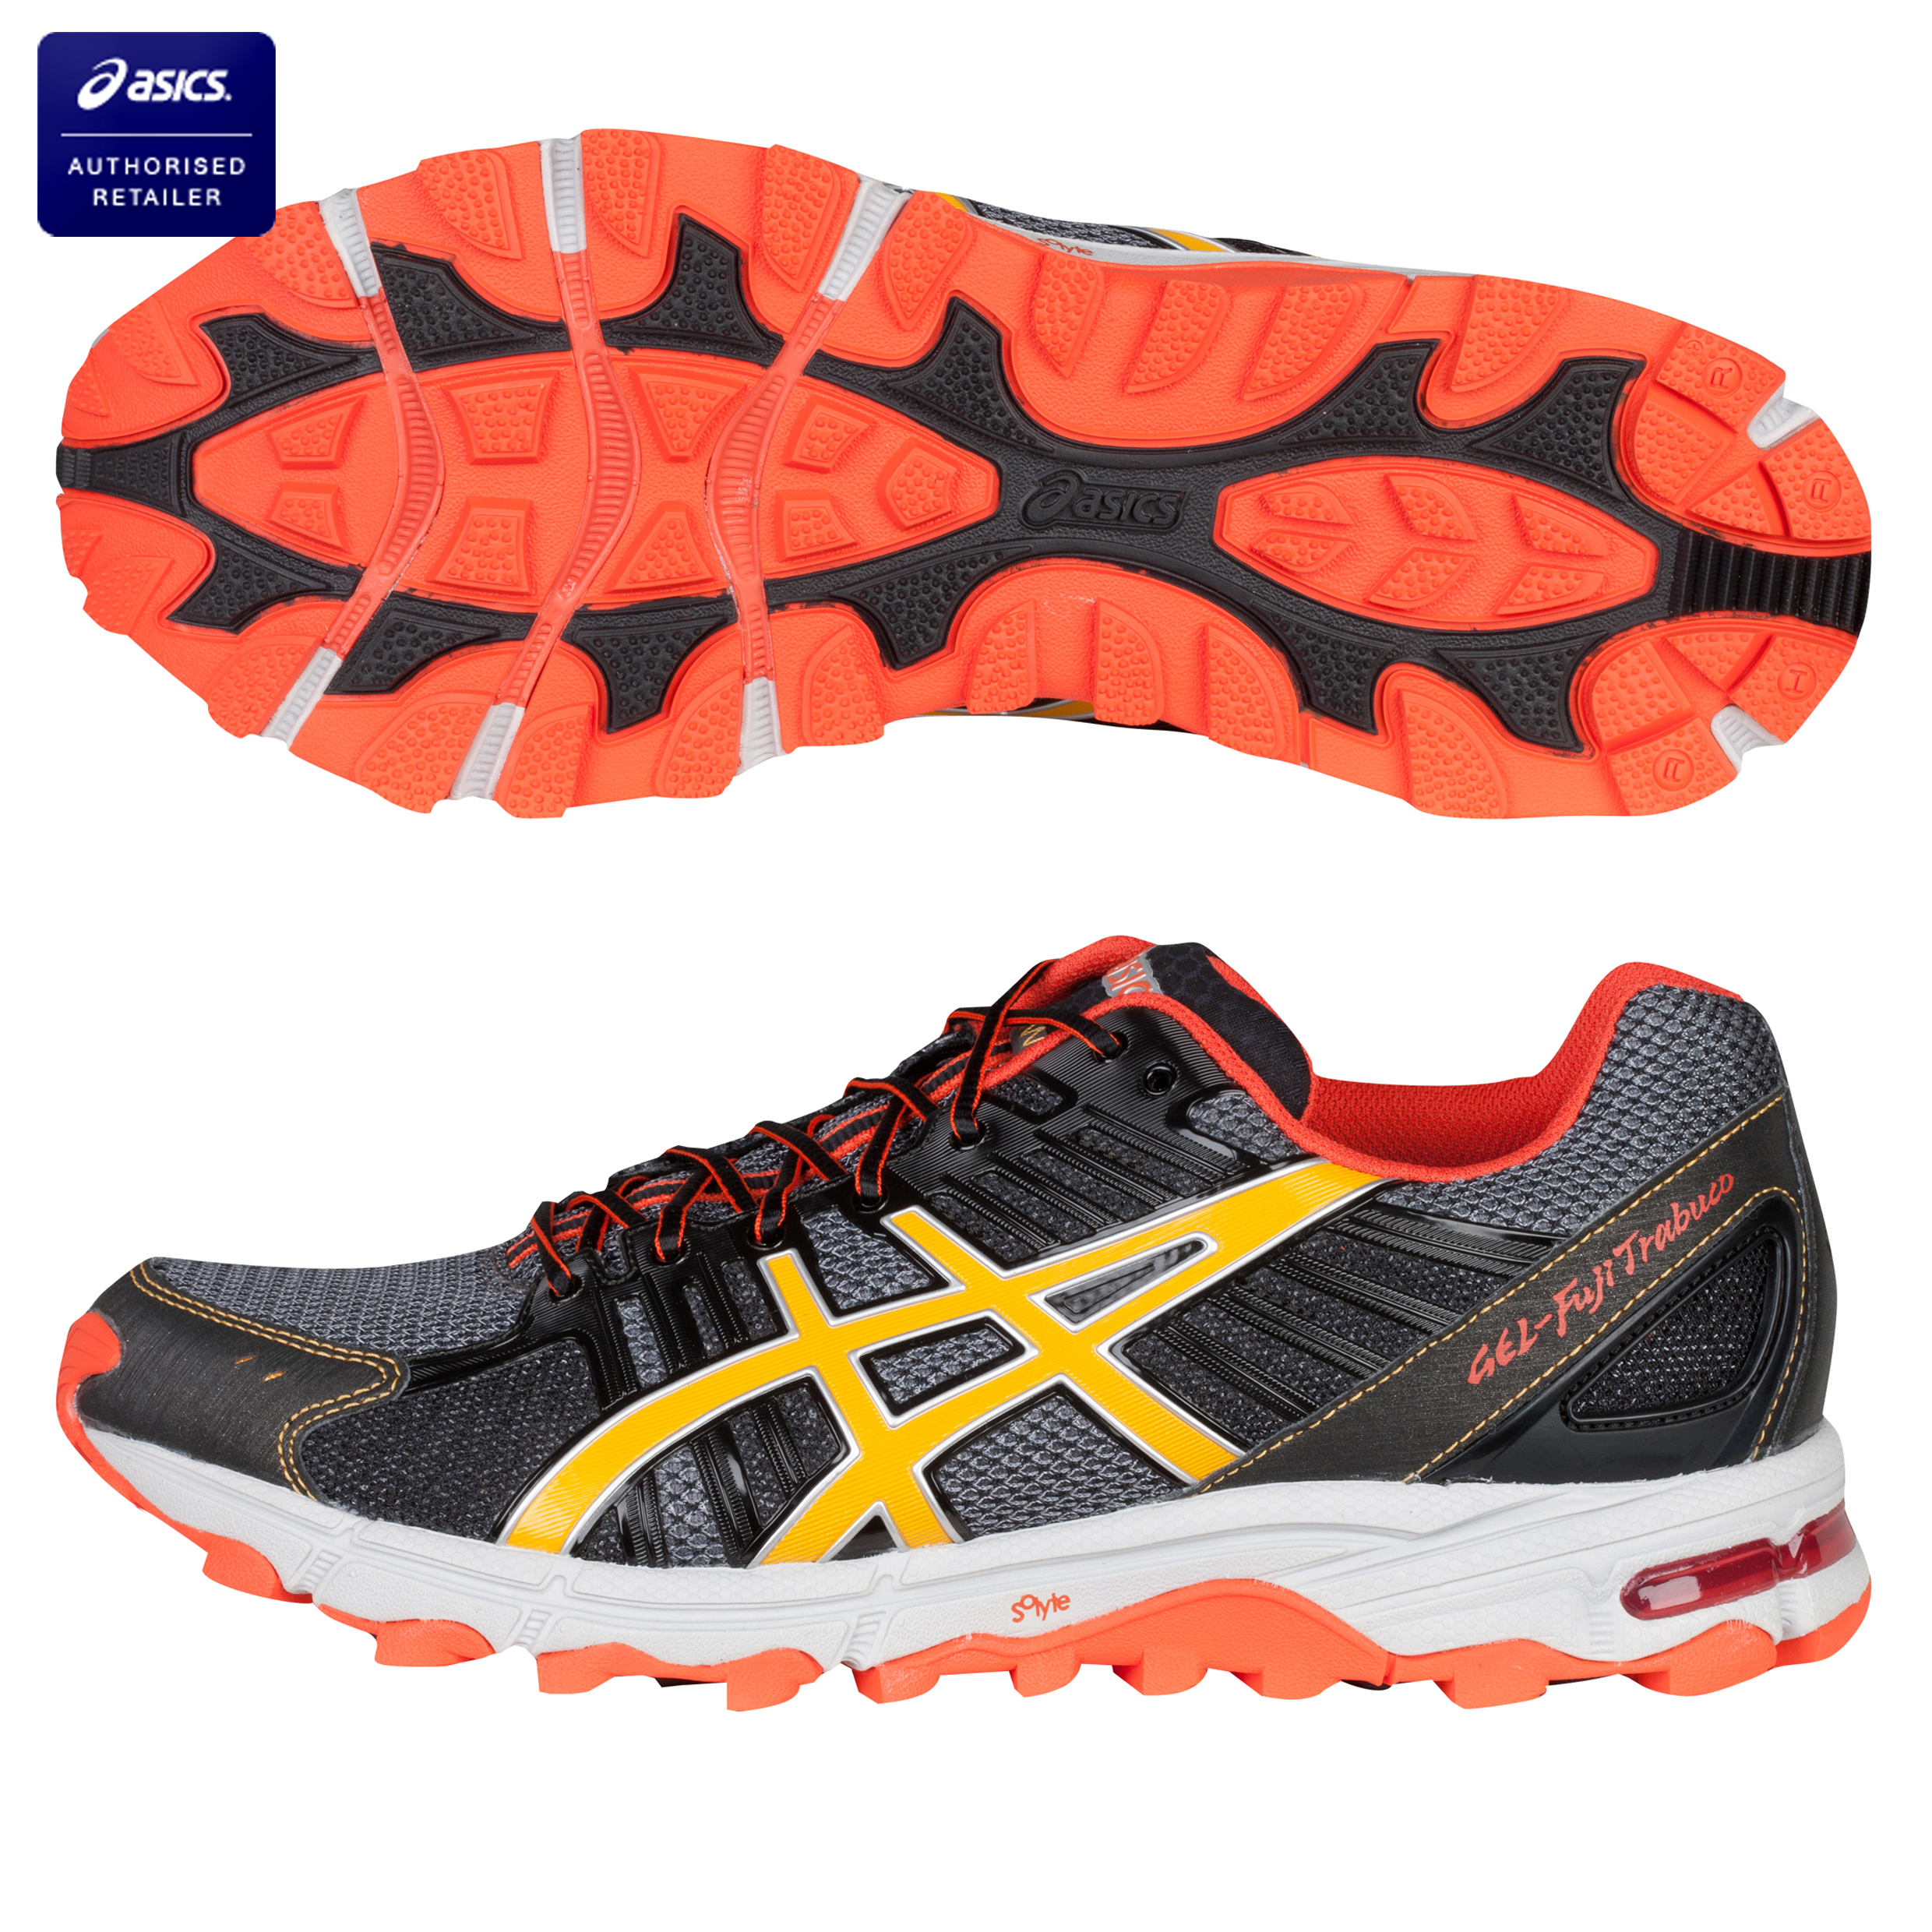 Asics Gel-Fuji Trabuco Running Trainers - Titanium/Orange/Black